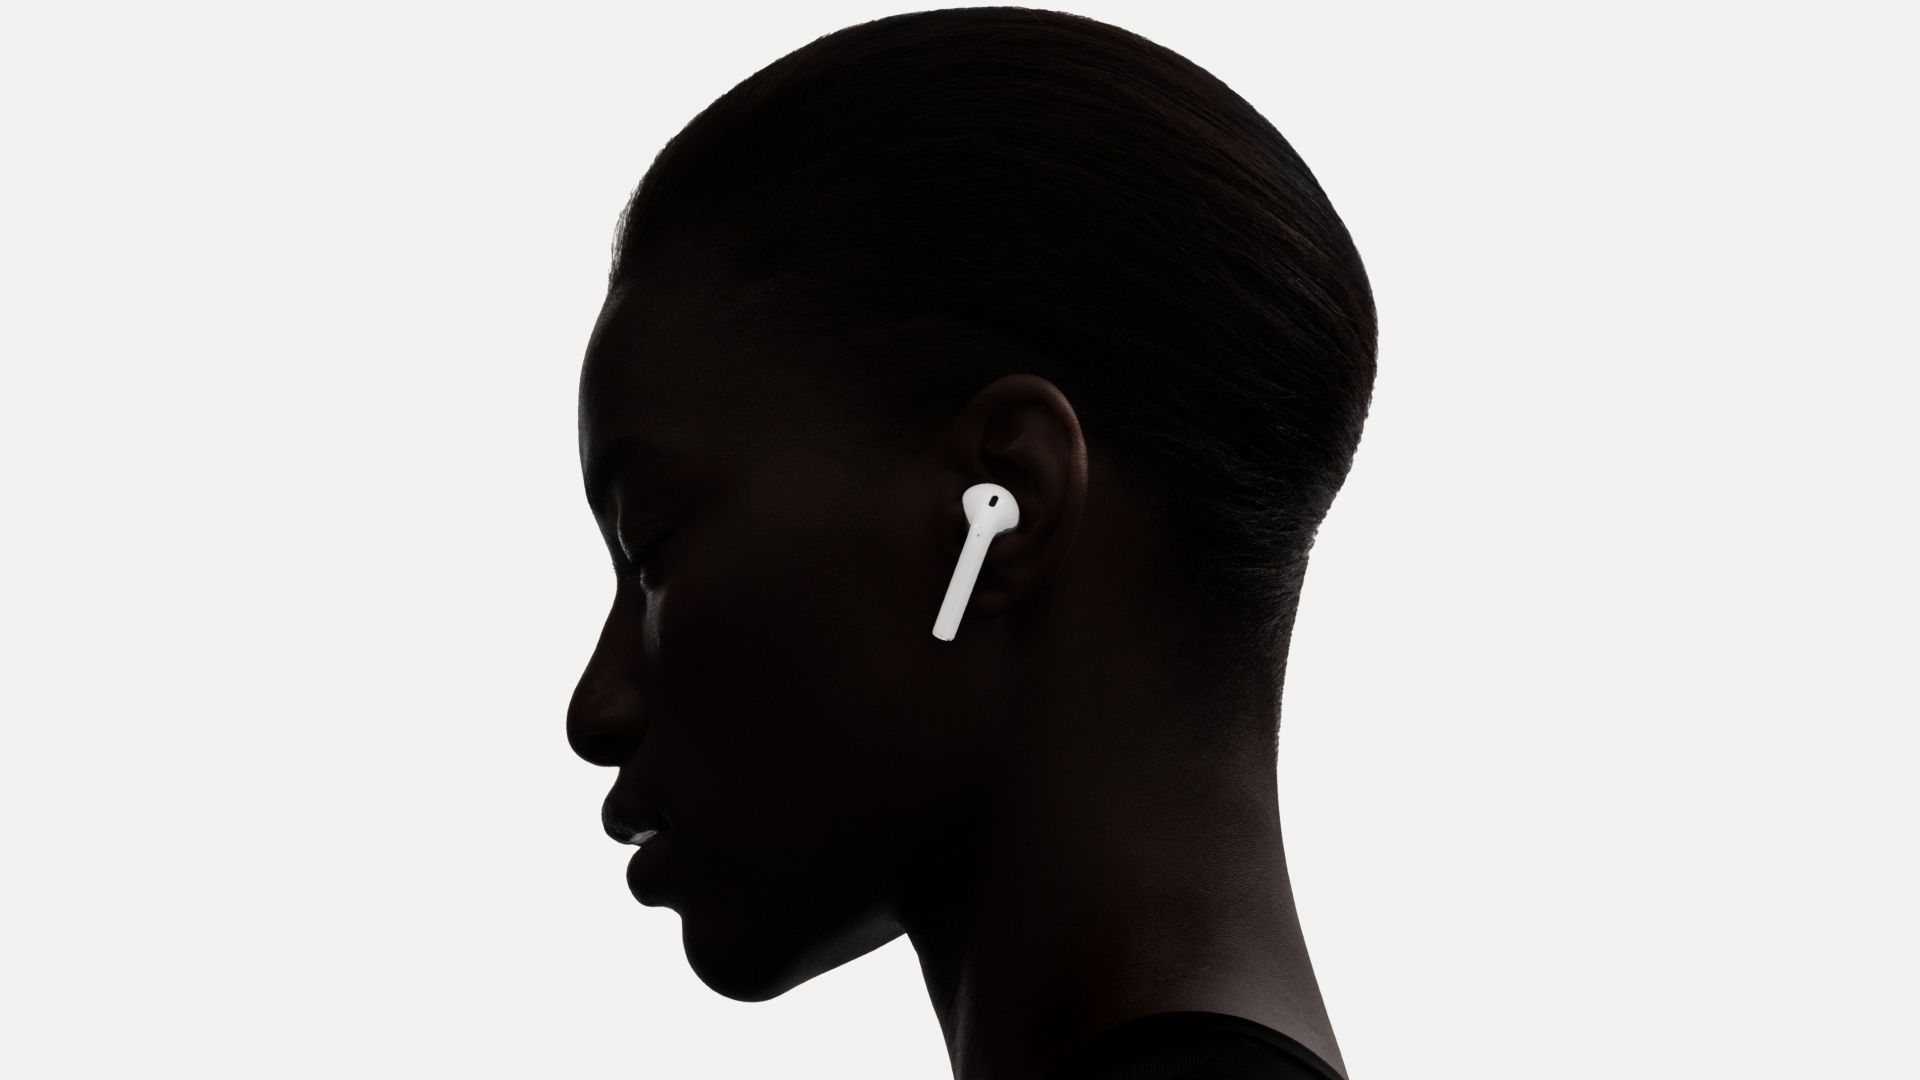 Rose Gold Wallpaper With Quotes Wallpaper Airpods Iphone 7 Review Woman Headset